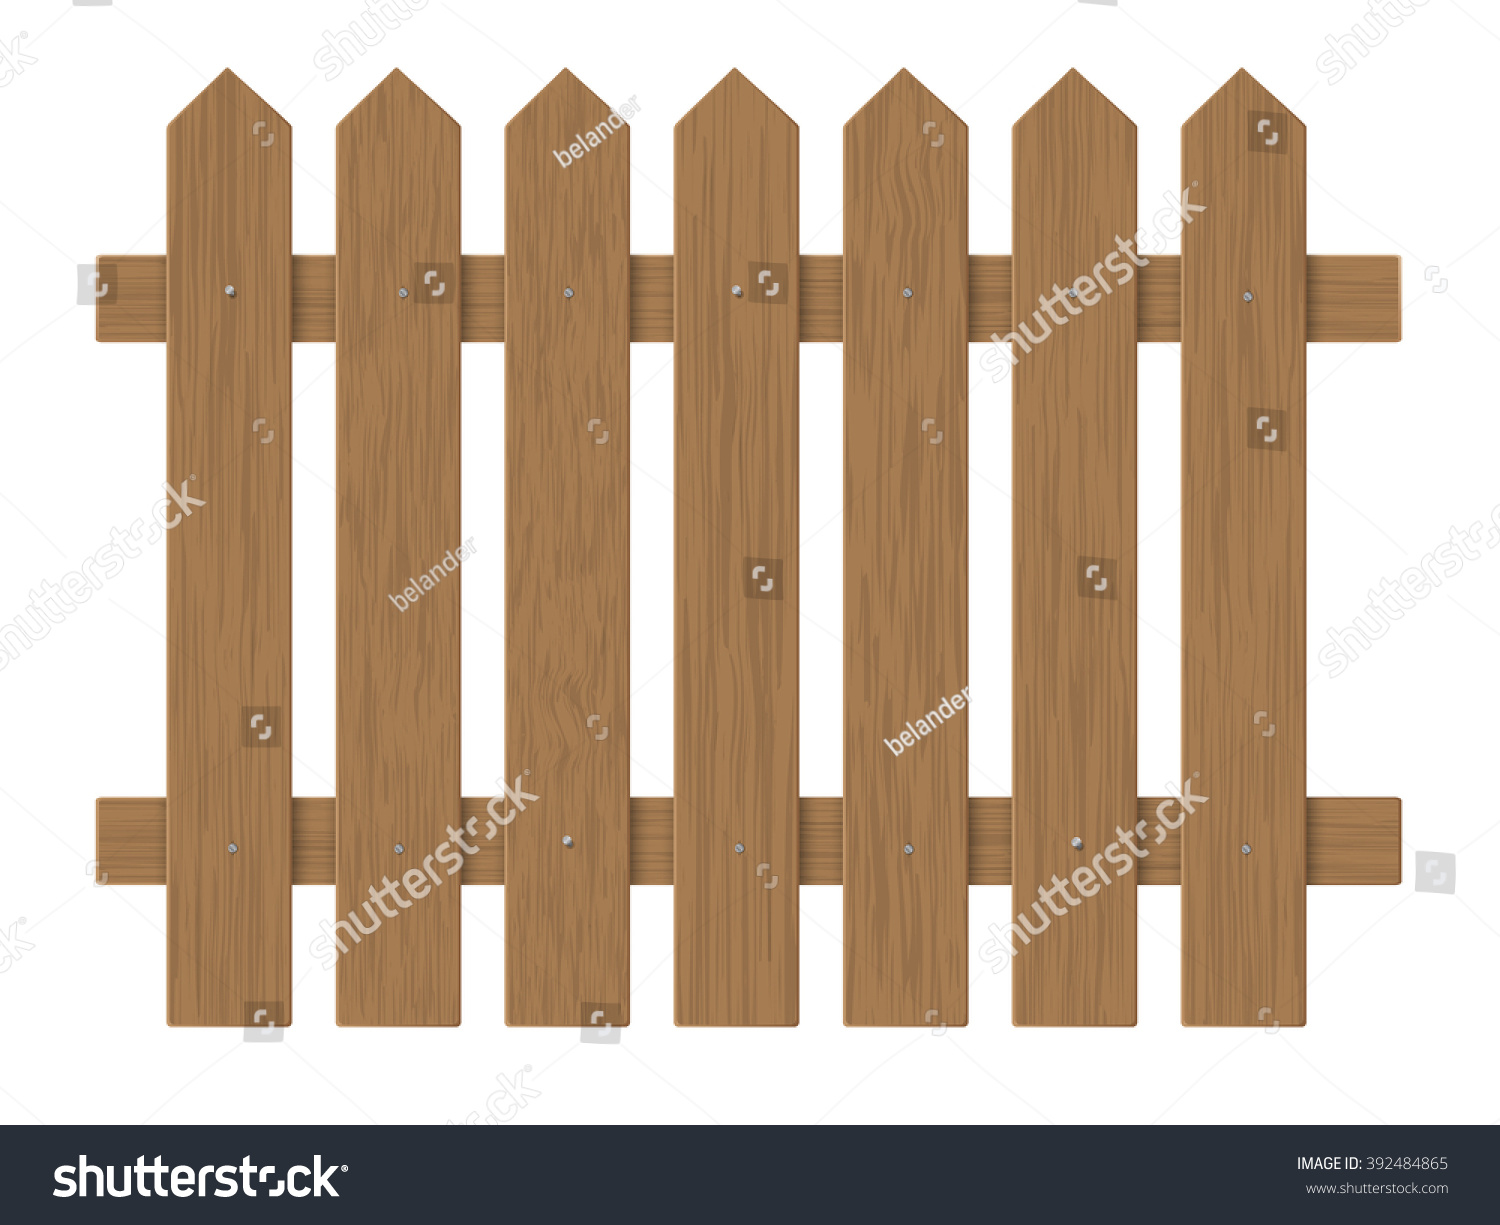 Brown Wooden Fence, Barrier In The Garden On The Farm Or In The Village.